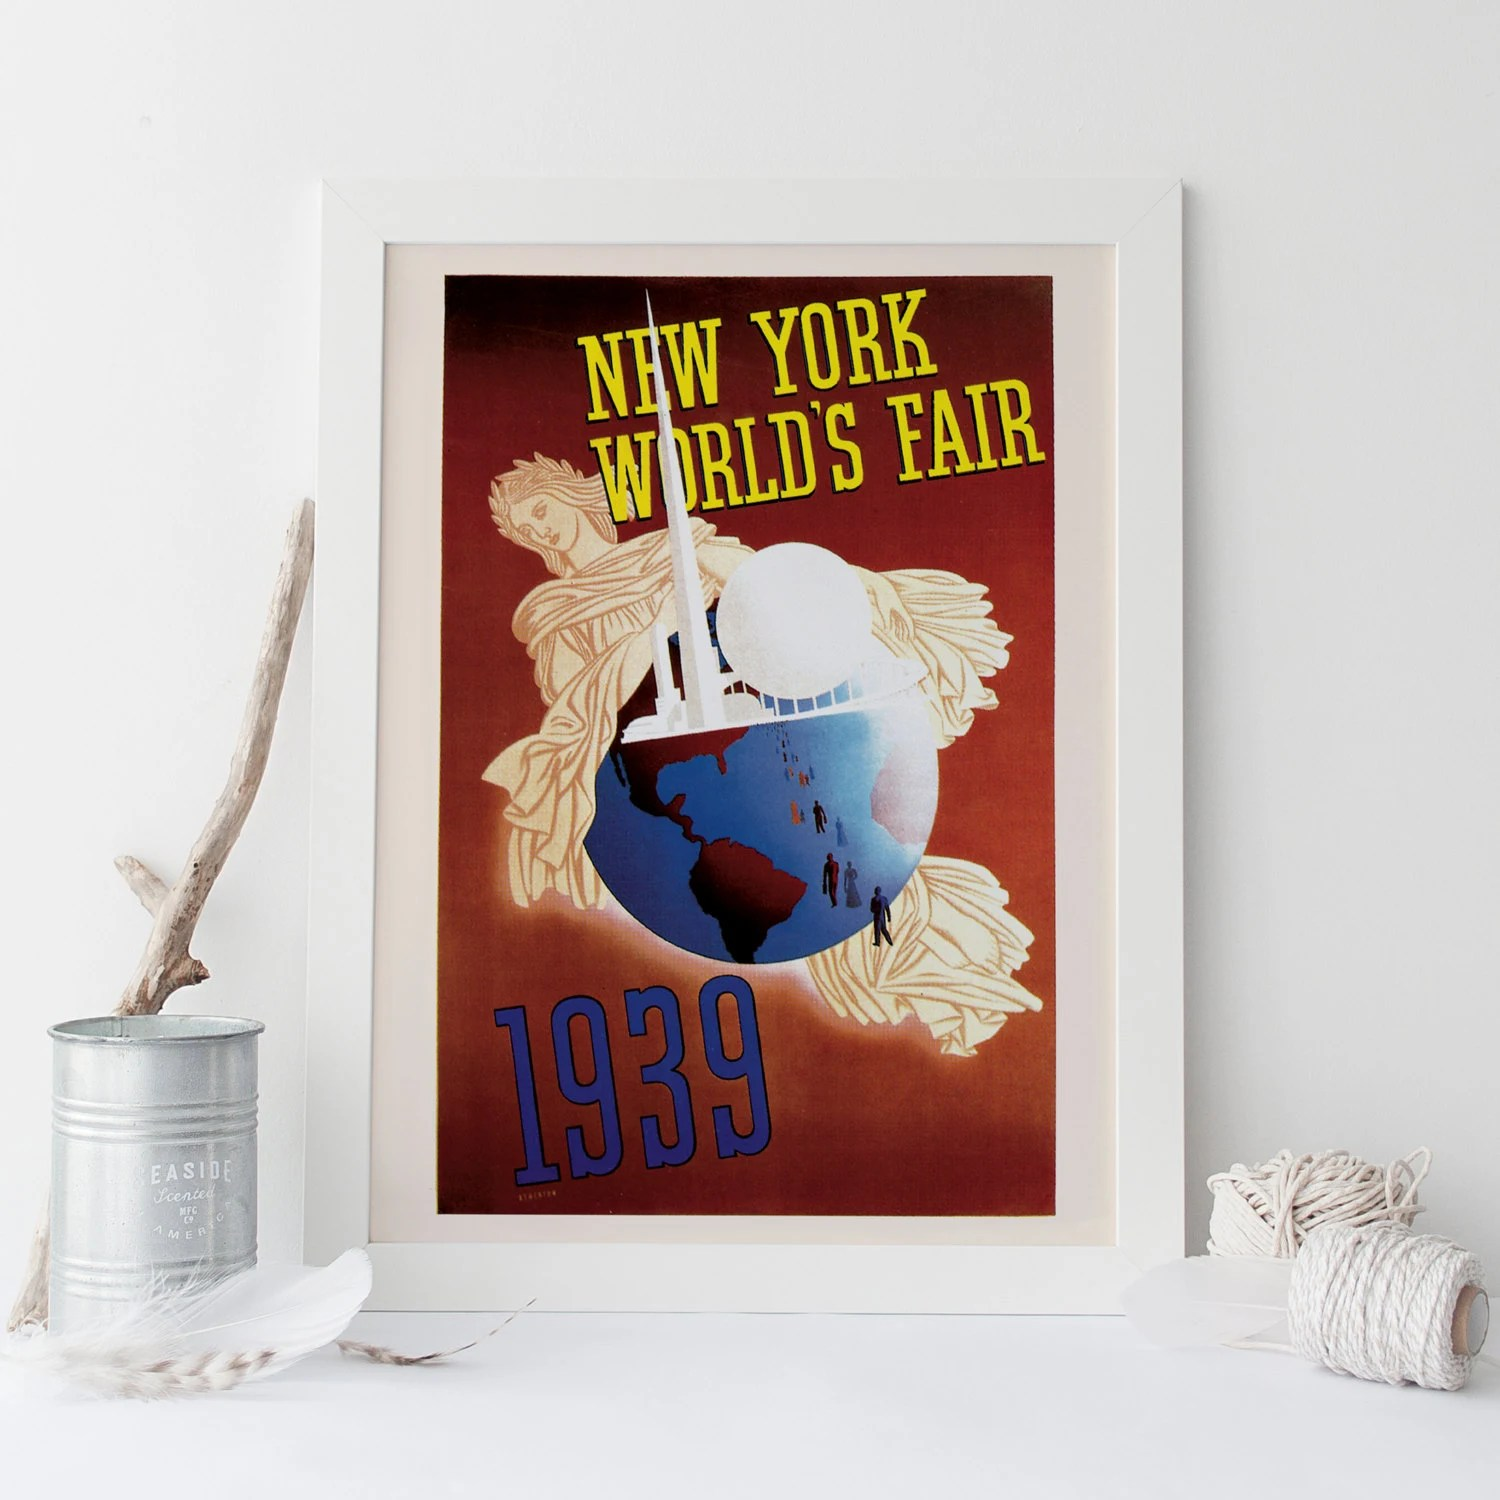 New York Poster Ikea Art Deco Poster Art Deco Print New York City Travel Poster Travel Print Expo 1939 Retro Poster Nyc Poster Ikea Ribba Retro Art Print